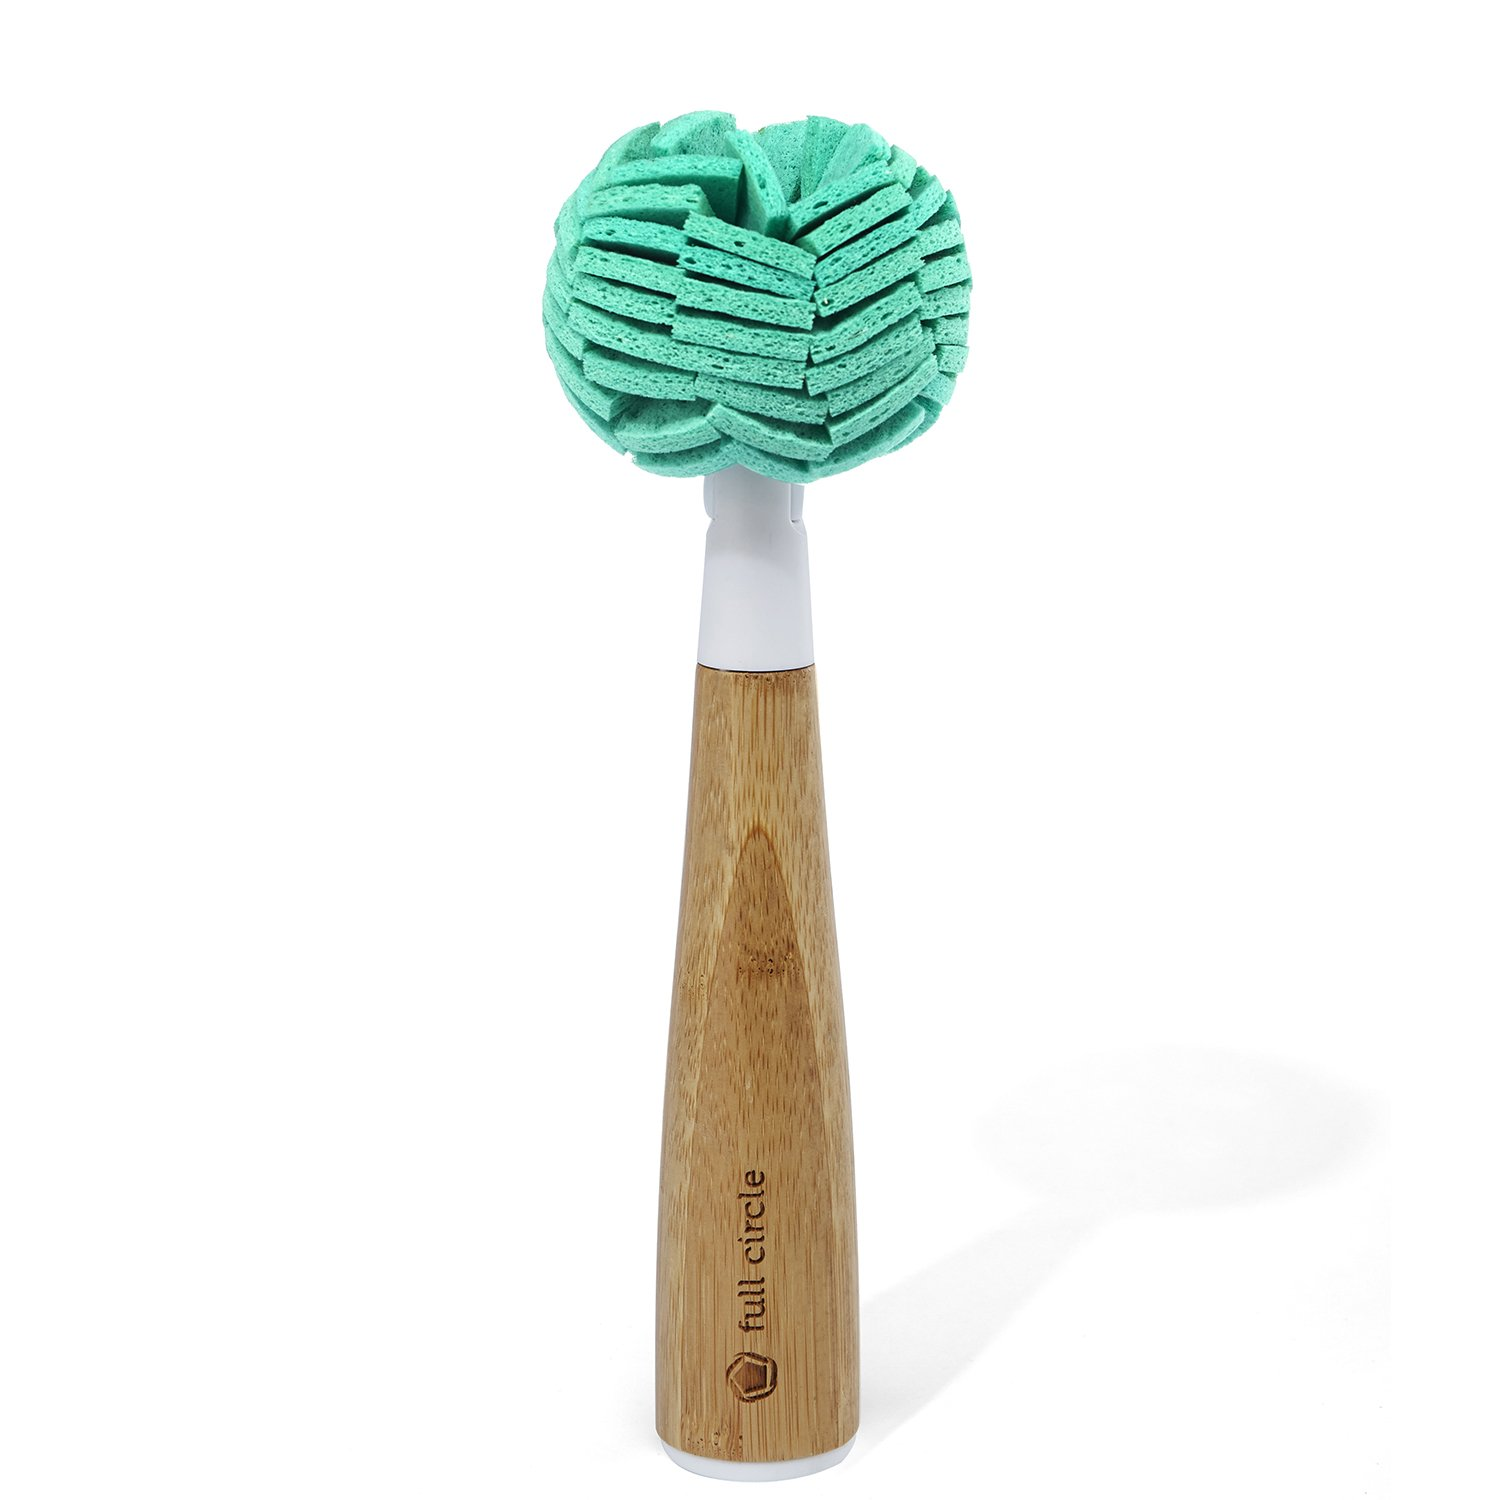 Full Circle Crystal Clear 2.0 Replaceable Glassware & Dish Cleaning Sponge with Bamboo Handle FC14109